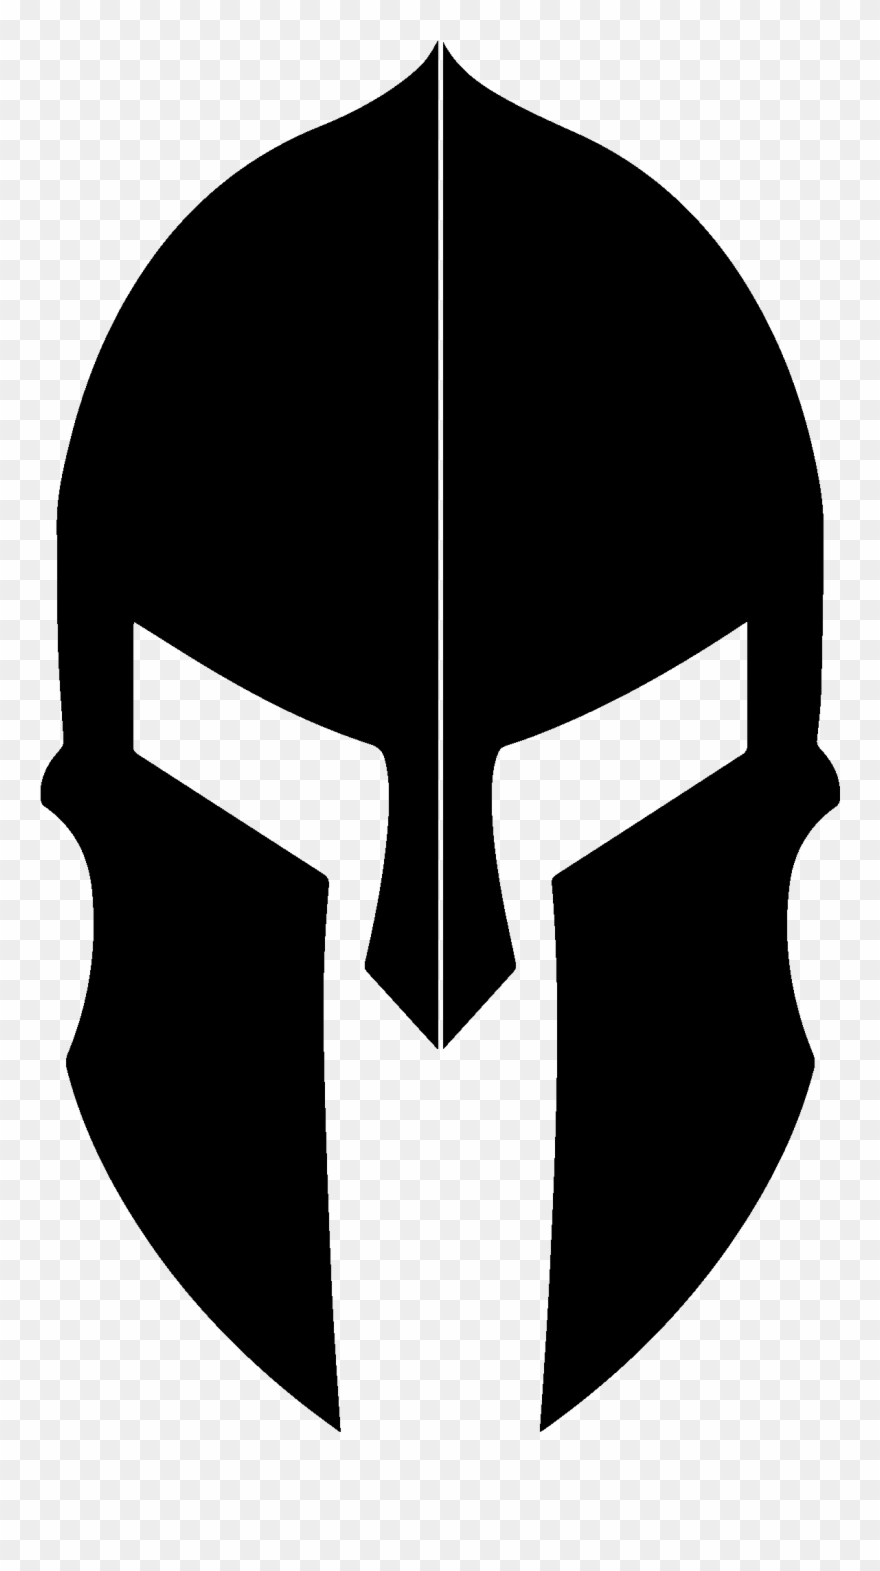 Spartan clipart graphic download Clipart Shield Spartan Shield - Spartan Helmet Logo - Png ... graphic download